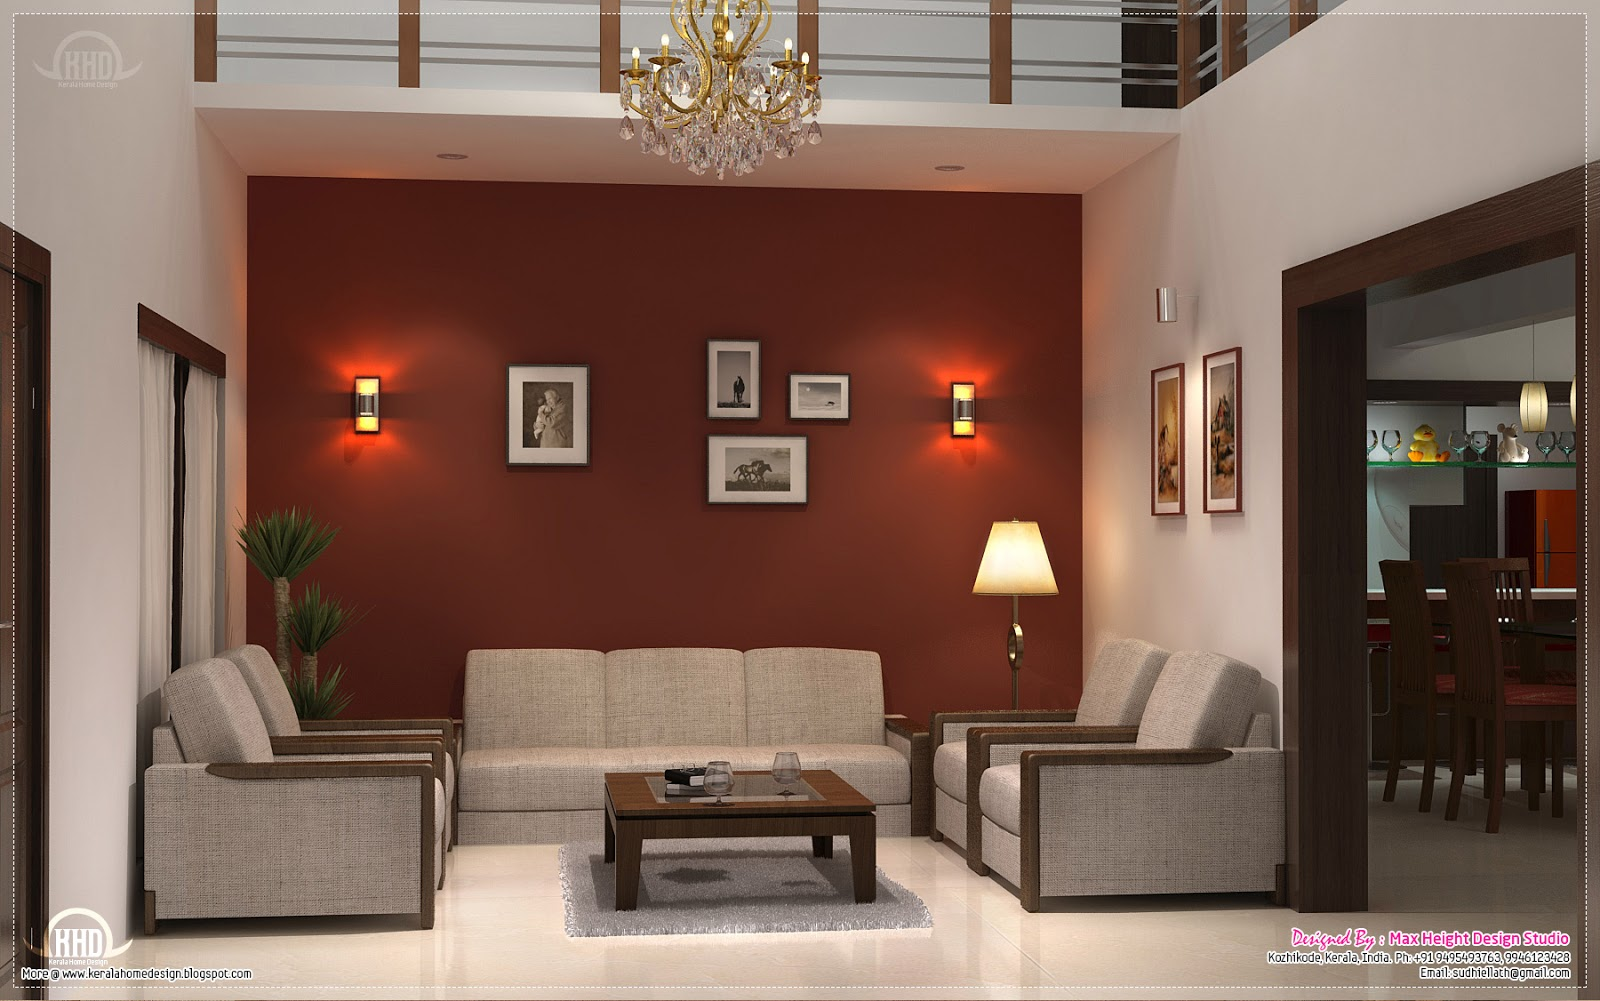 Home interior design ideas kerala home design and floor plans - Interior design of home ...